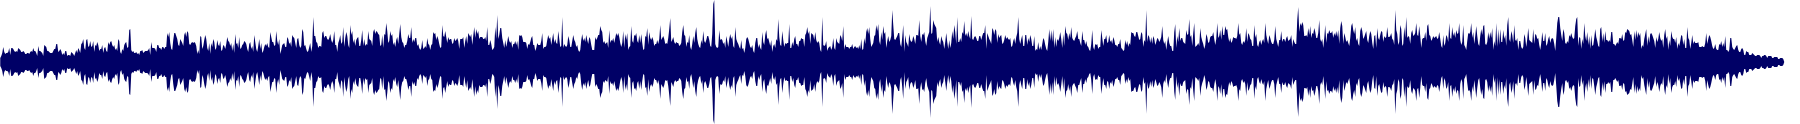 waveform of track #77236